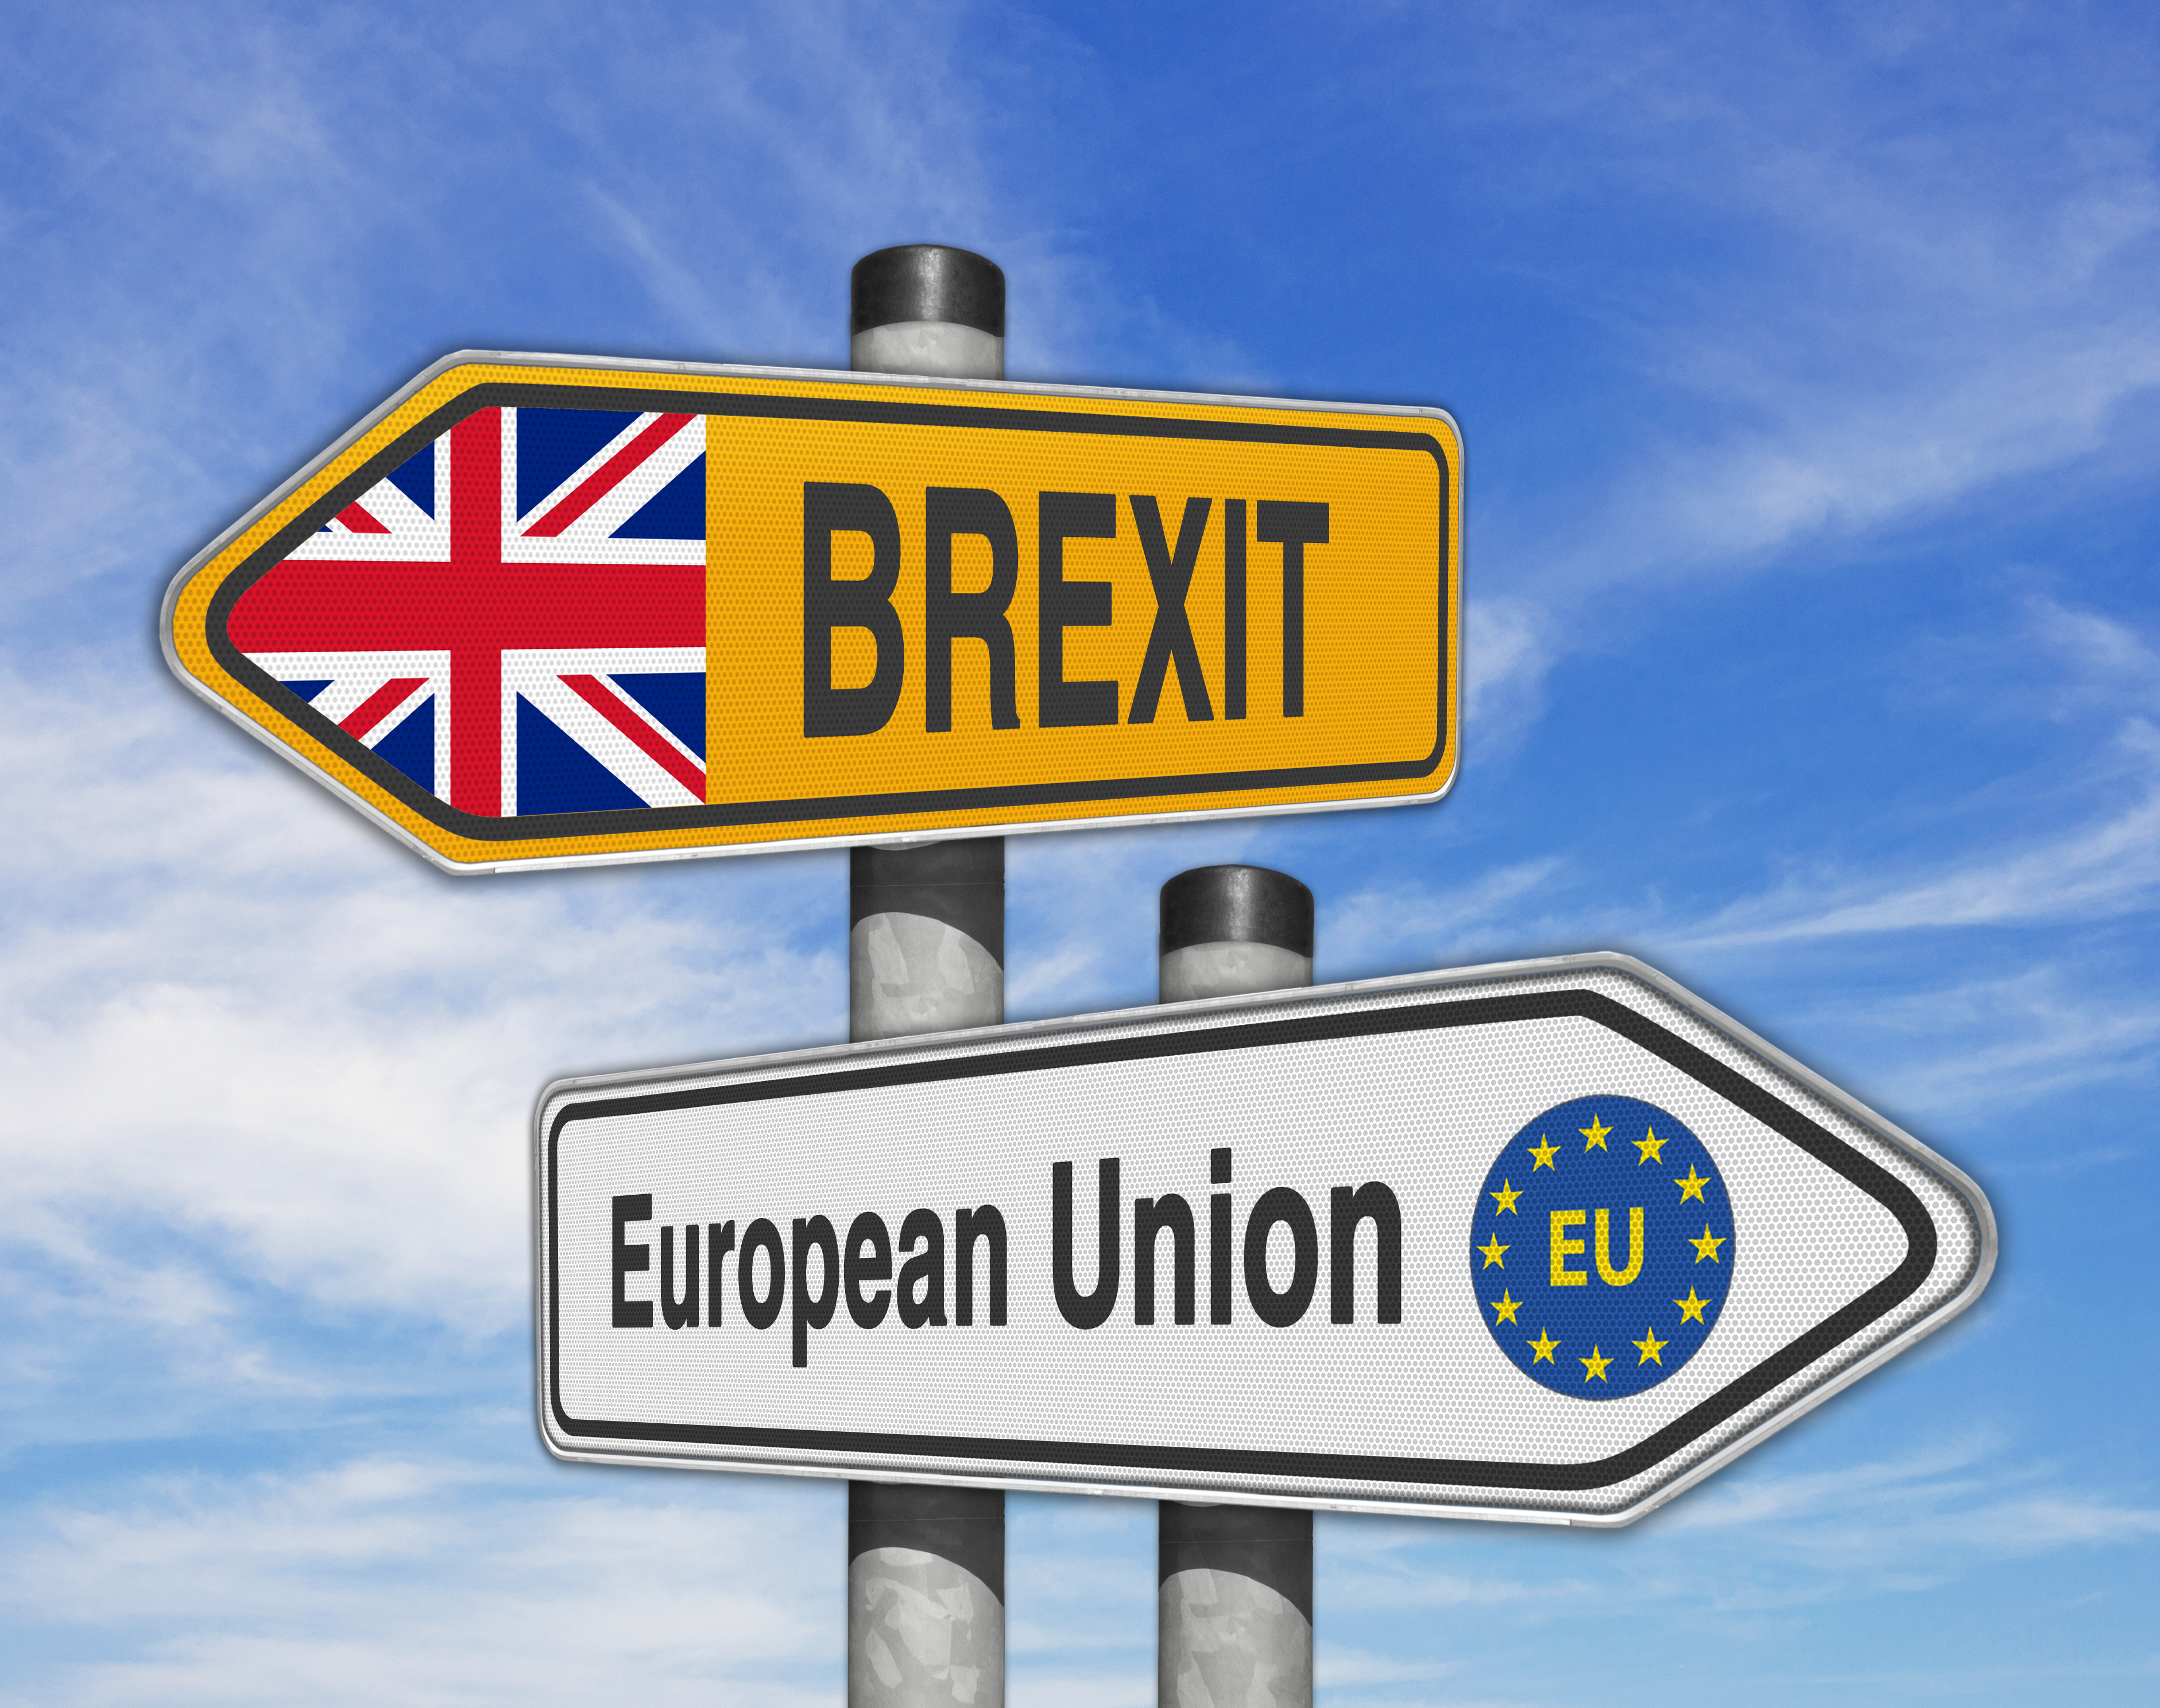 Brexit and European Union road signs